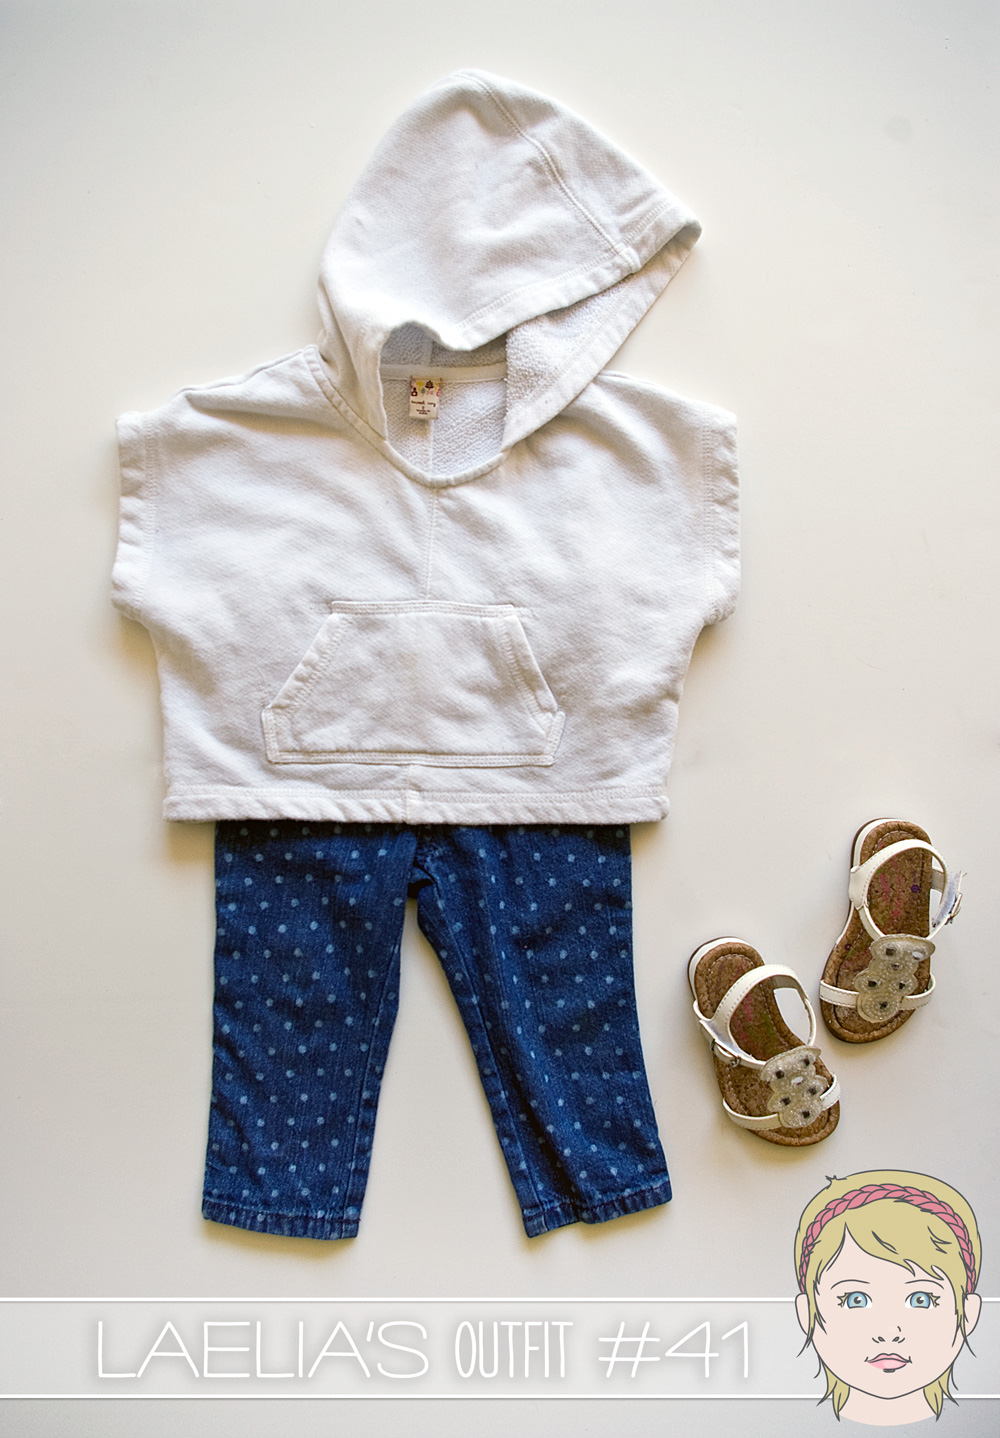 LaeliaOutfit41